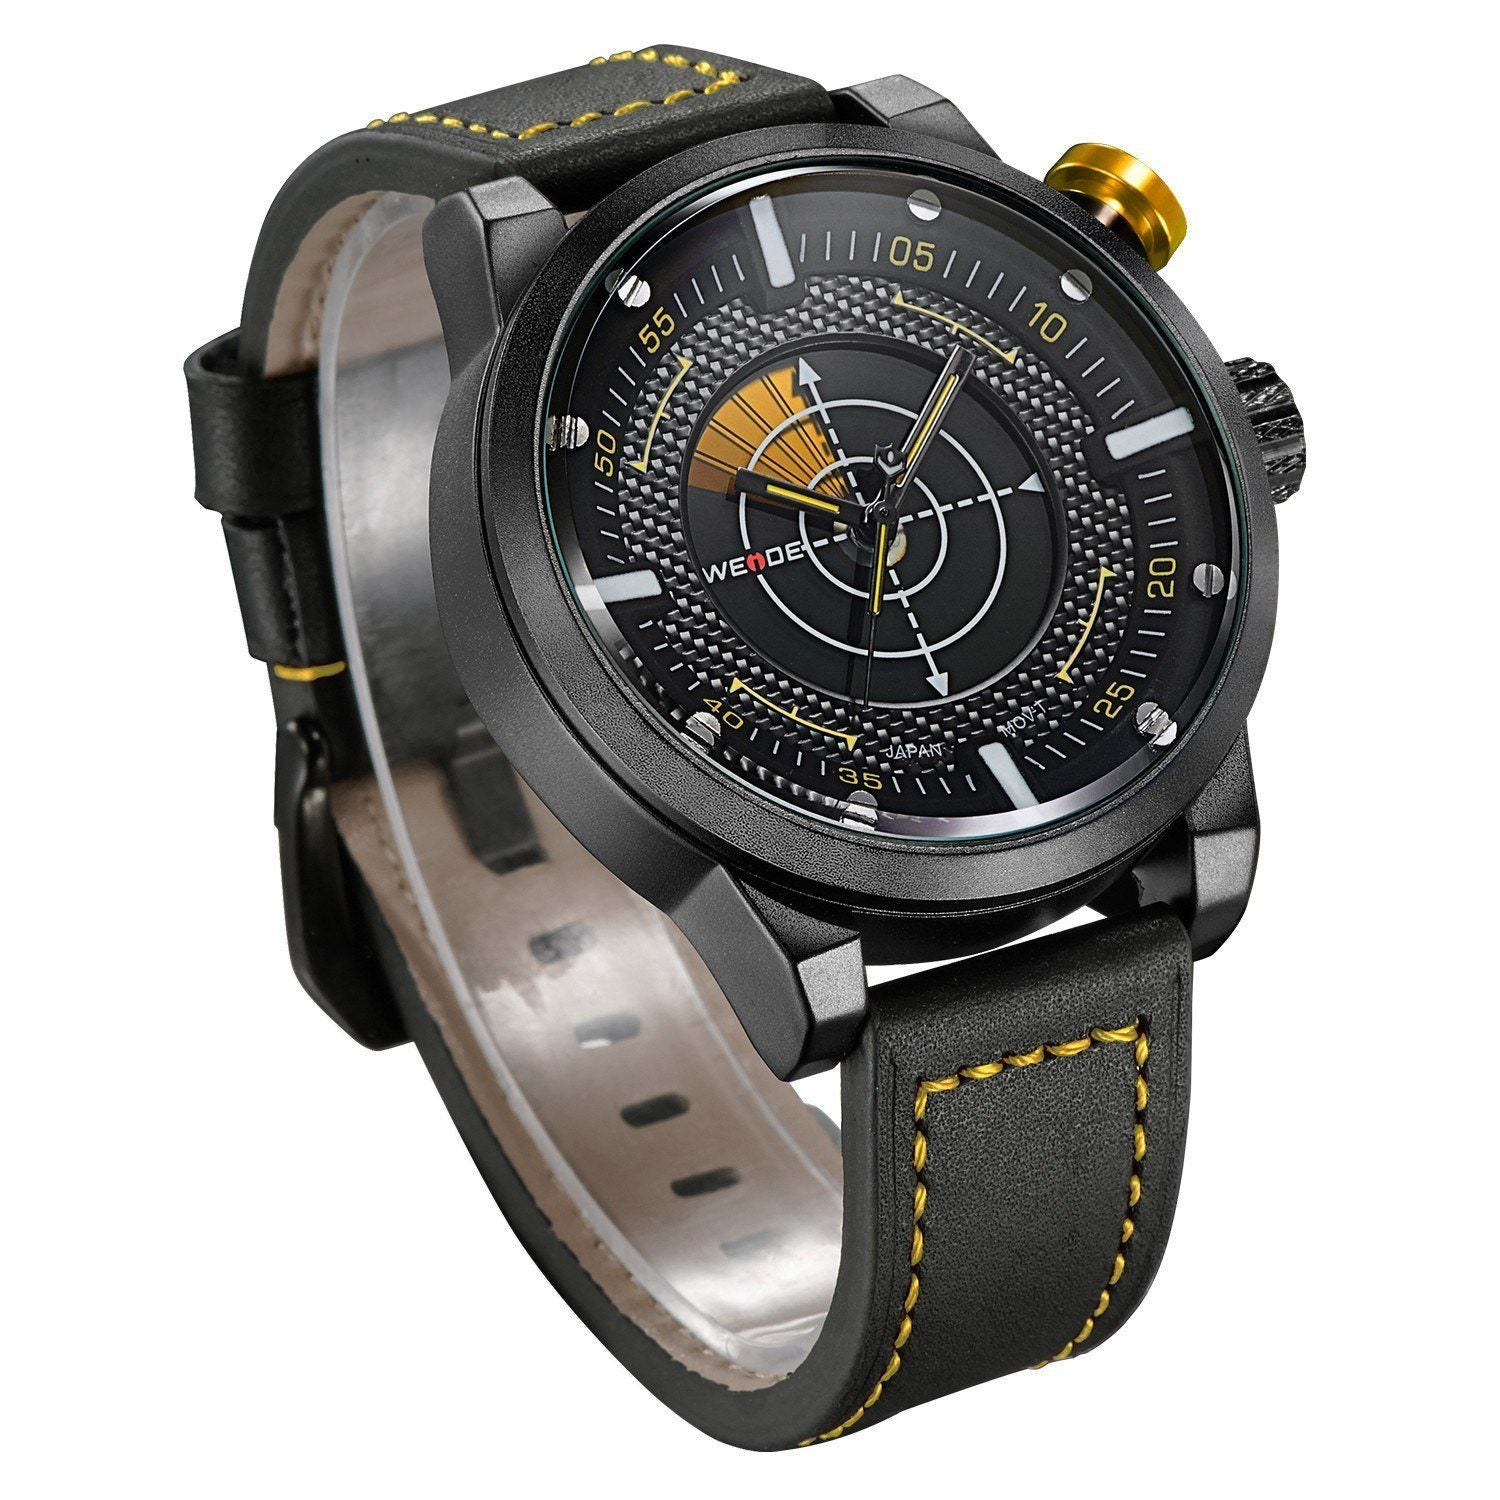 Watches - Weide Dual Analog Time Genuine Leather Strap Watch For Men - WH5201-4C-YELLOW INDEX